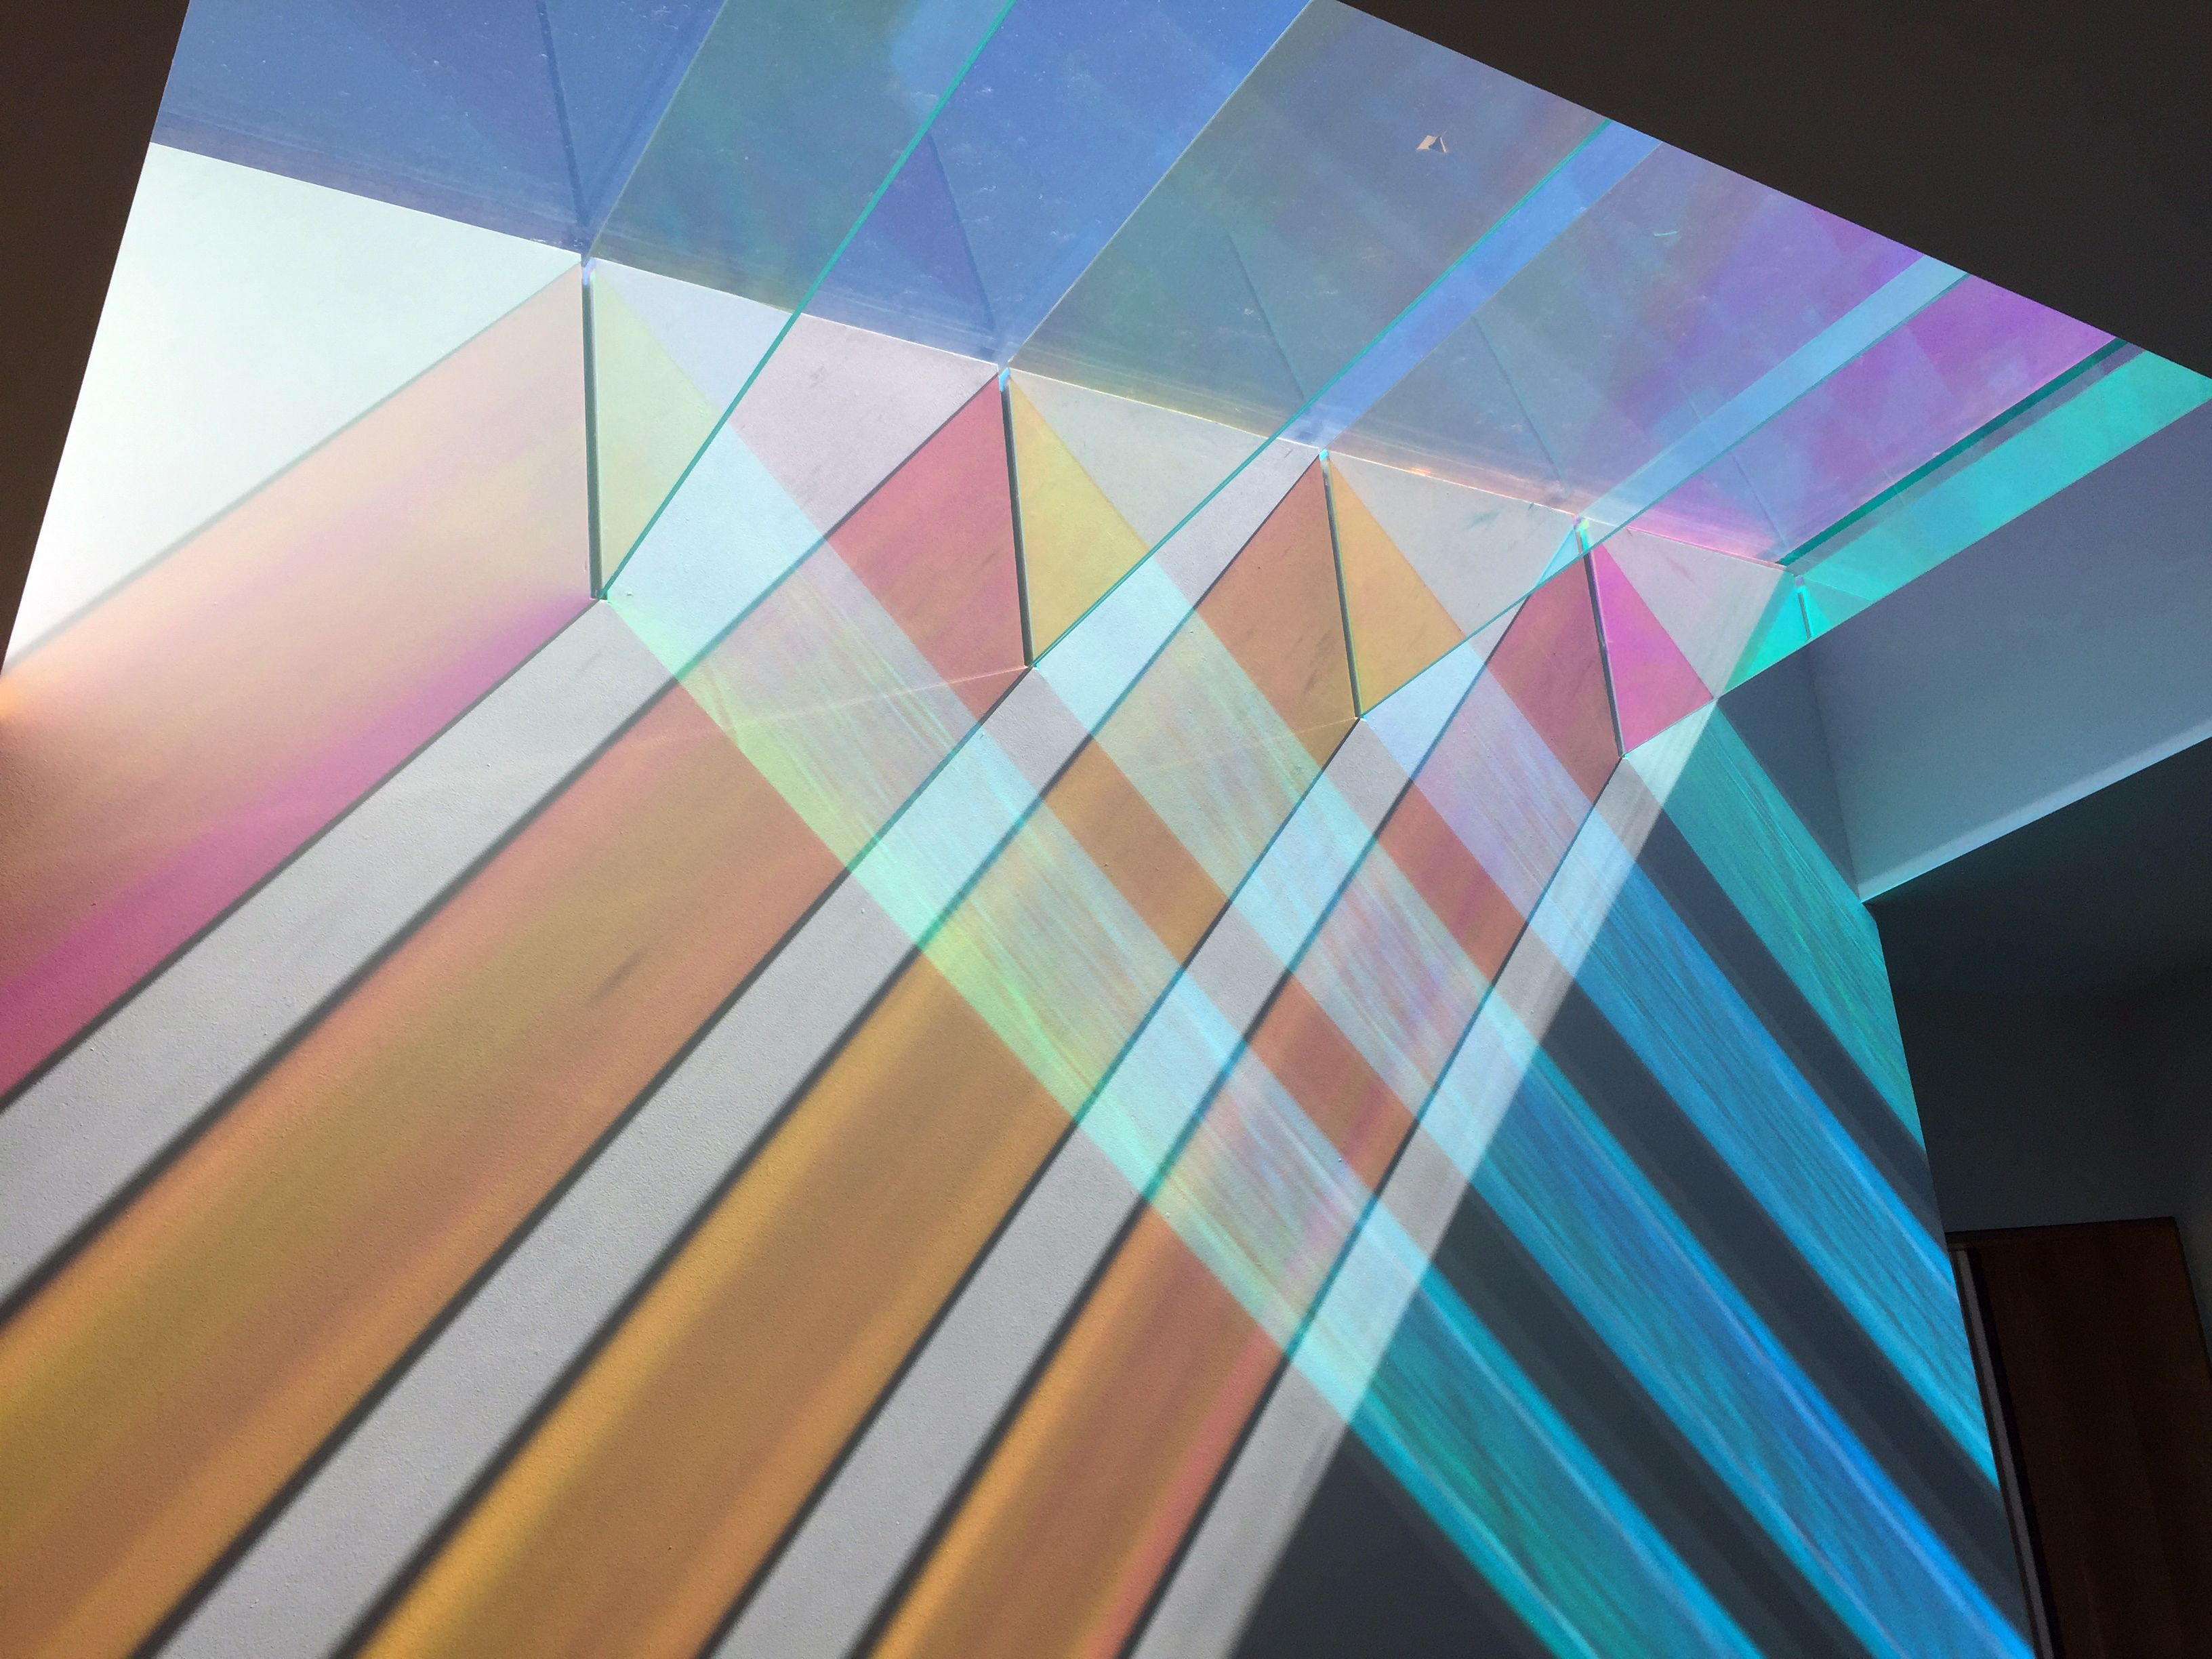 medium resolution of diacroic glass materials dichroic glass sunlight or electrical illumination